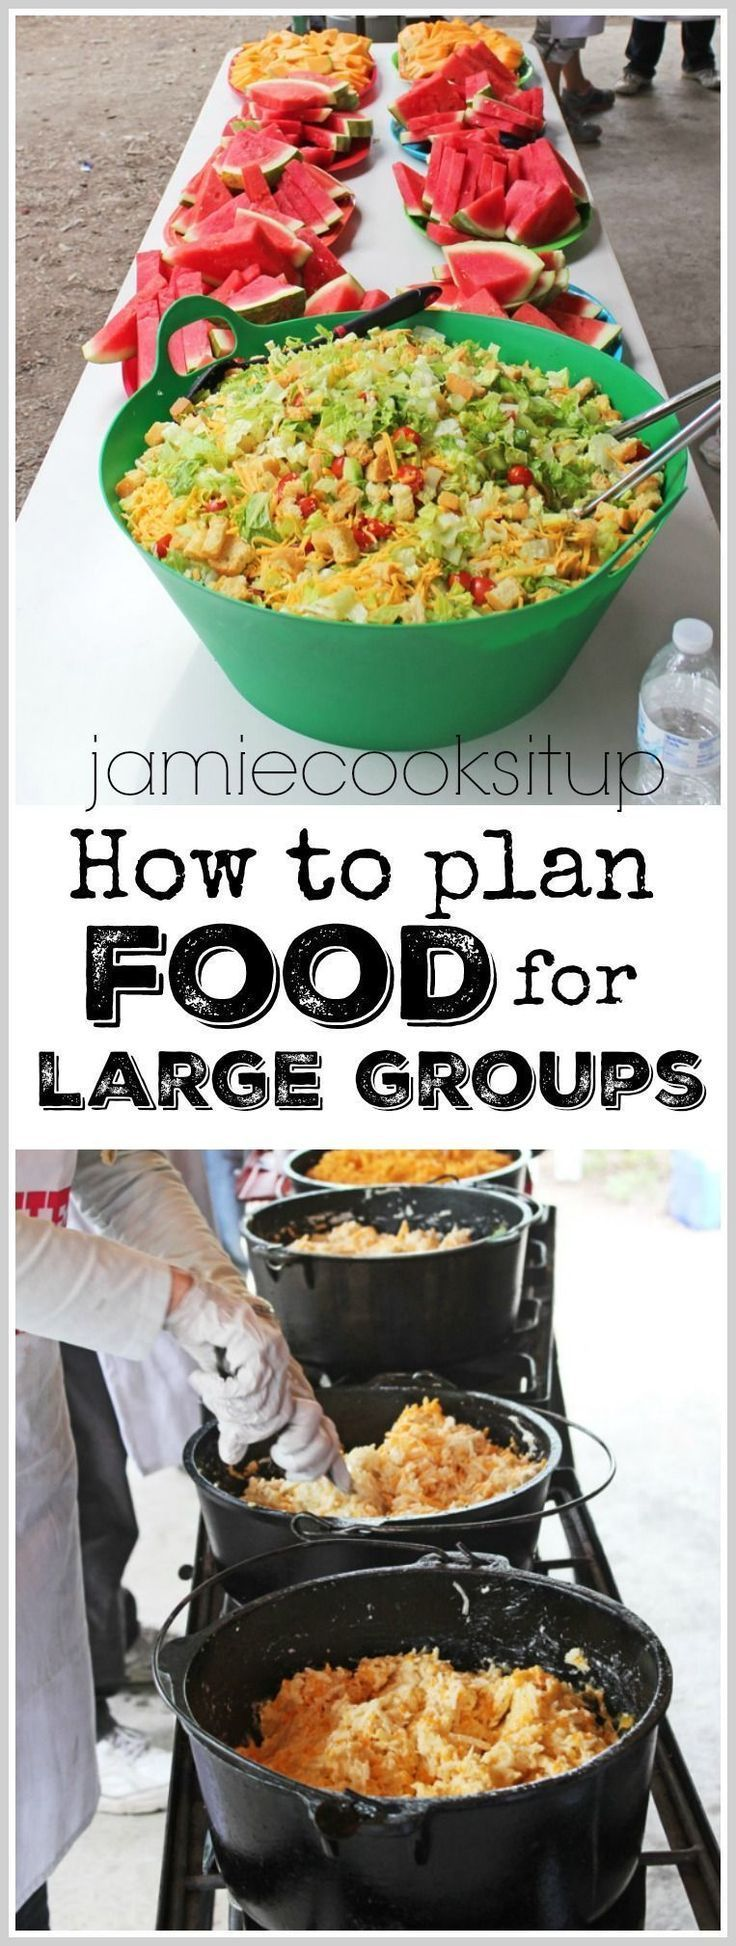 How to plan food for Girls Camp, Youth Conference, Family Reunions or other Large Groups images